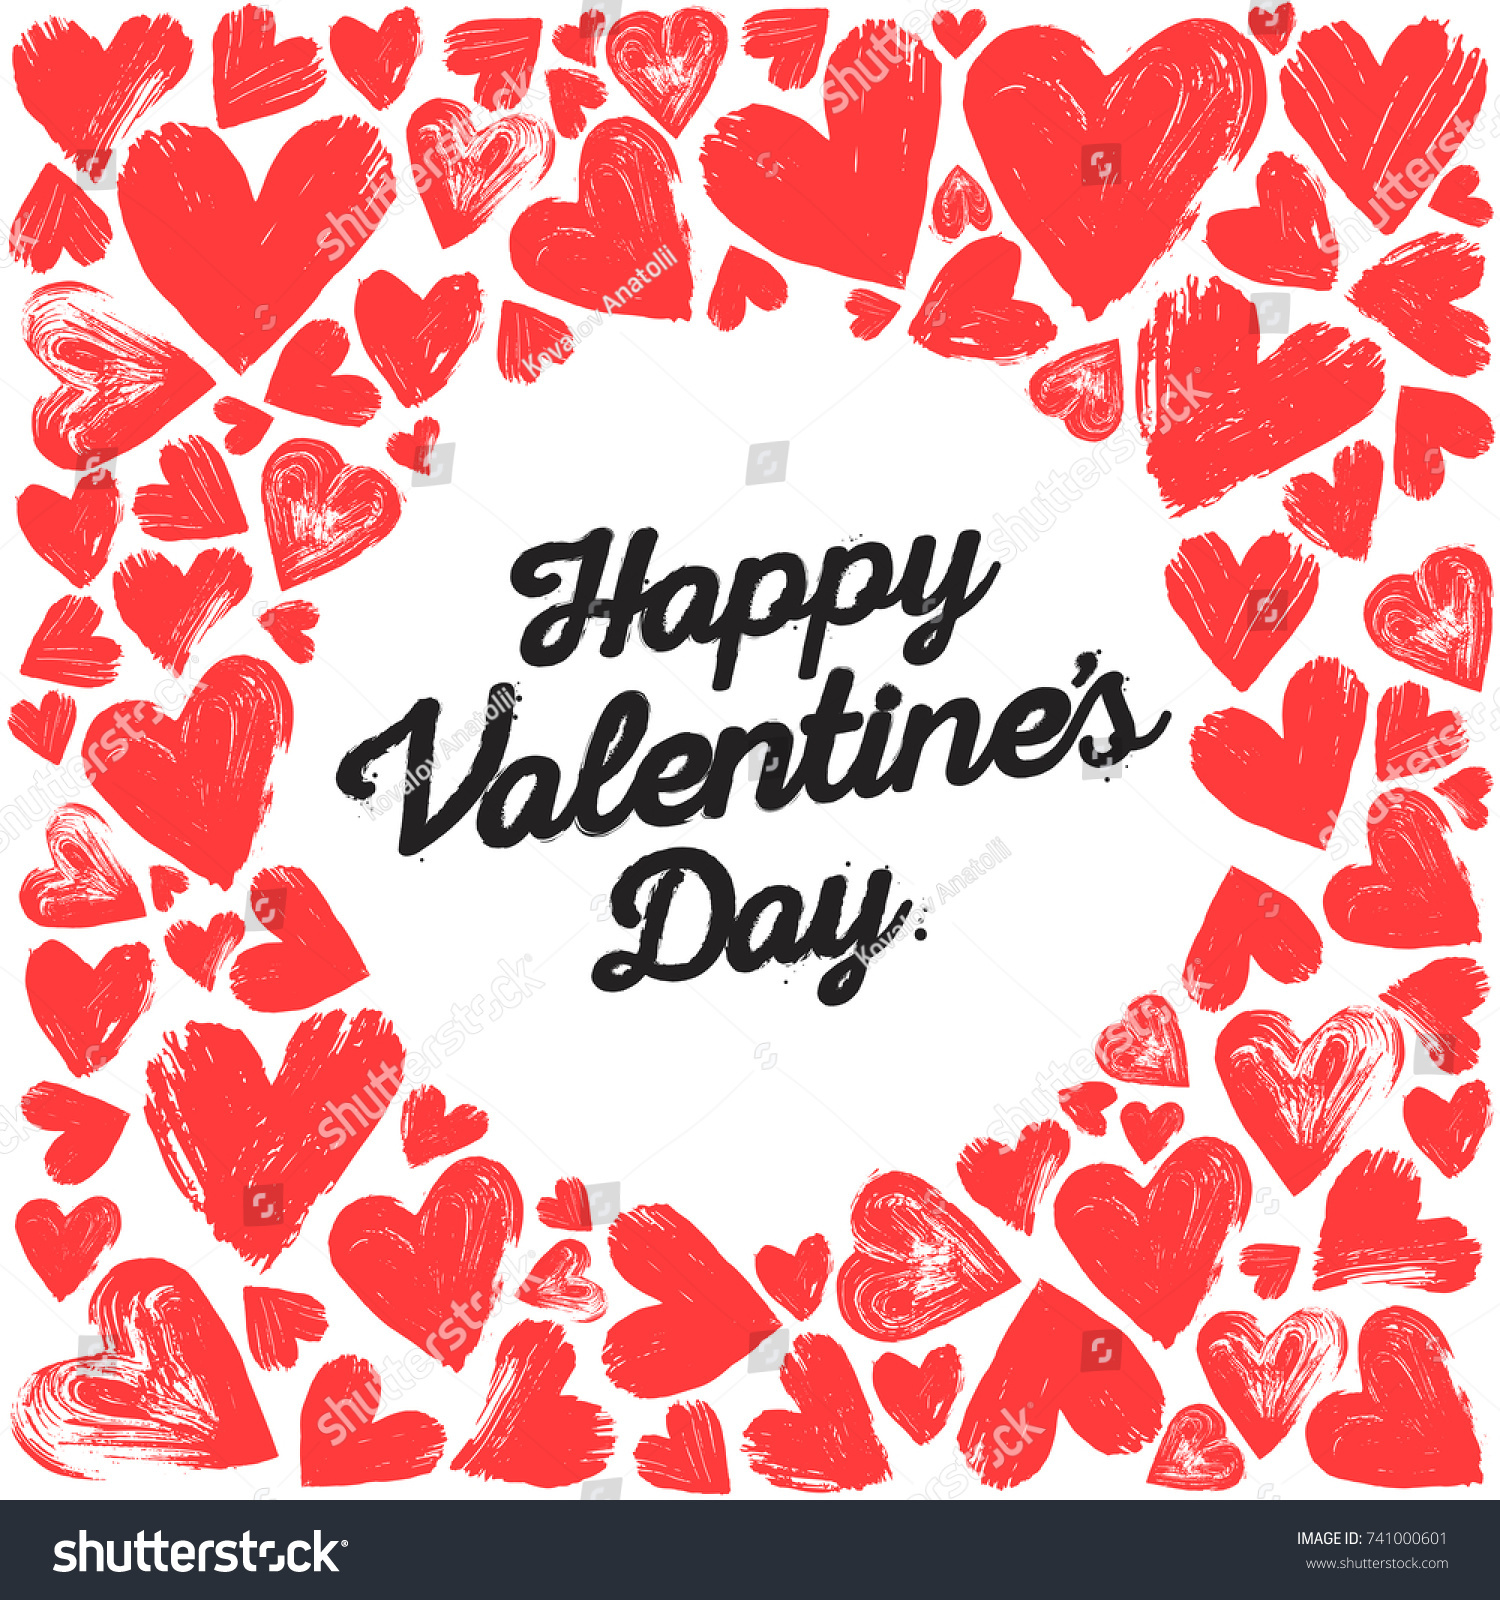 Happy Valentines Day Poster Handwritten Text Stock Vector Royalty